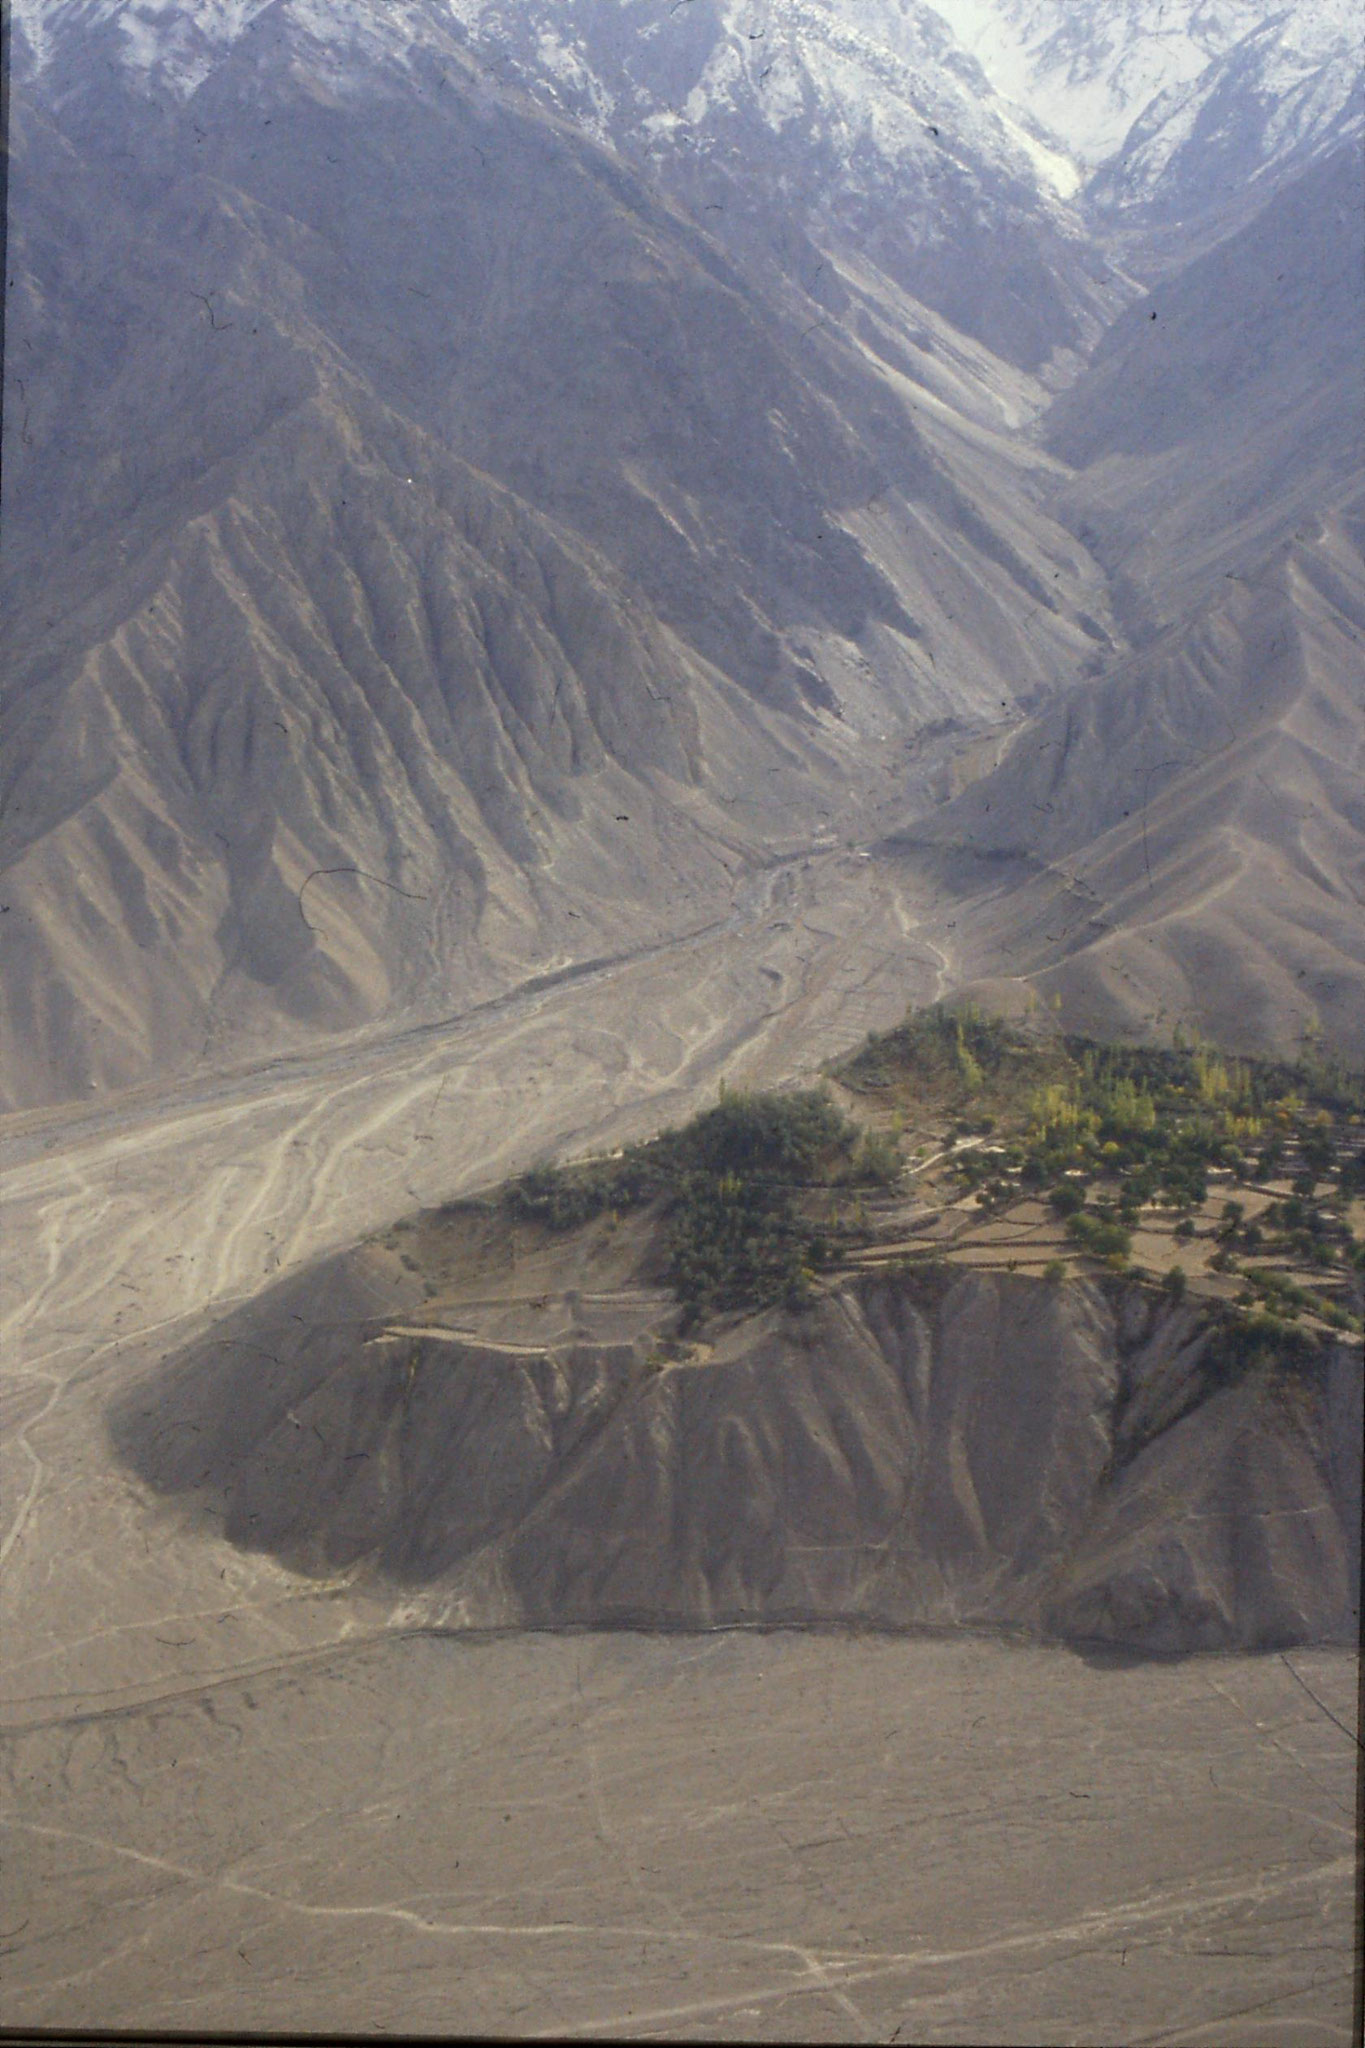 22/10/1989: 14: from plane, south from Skardu Shyok river